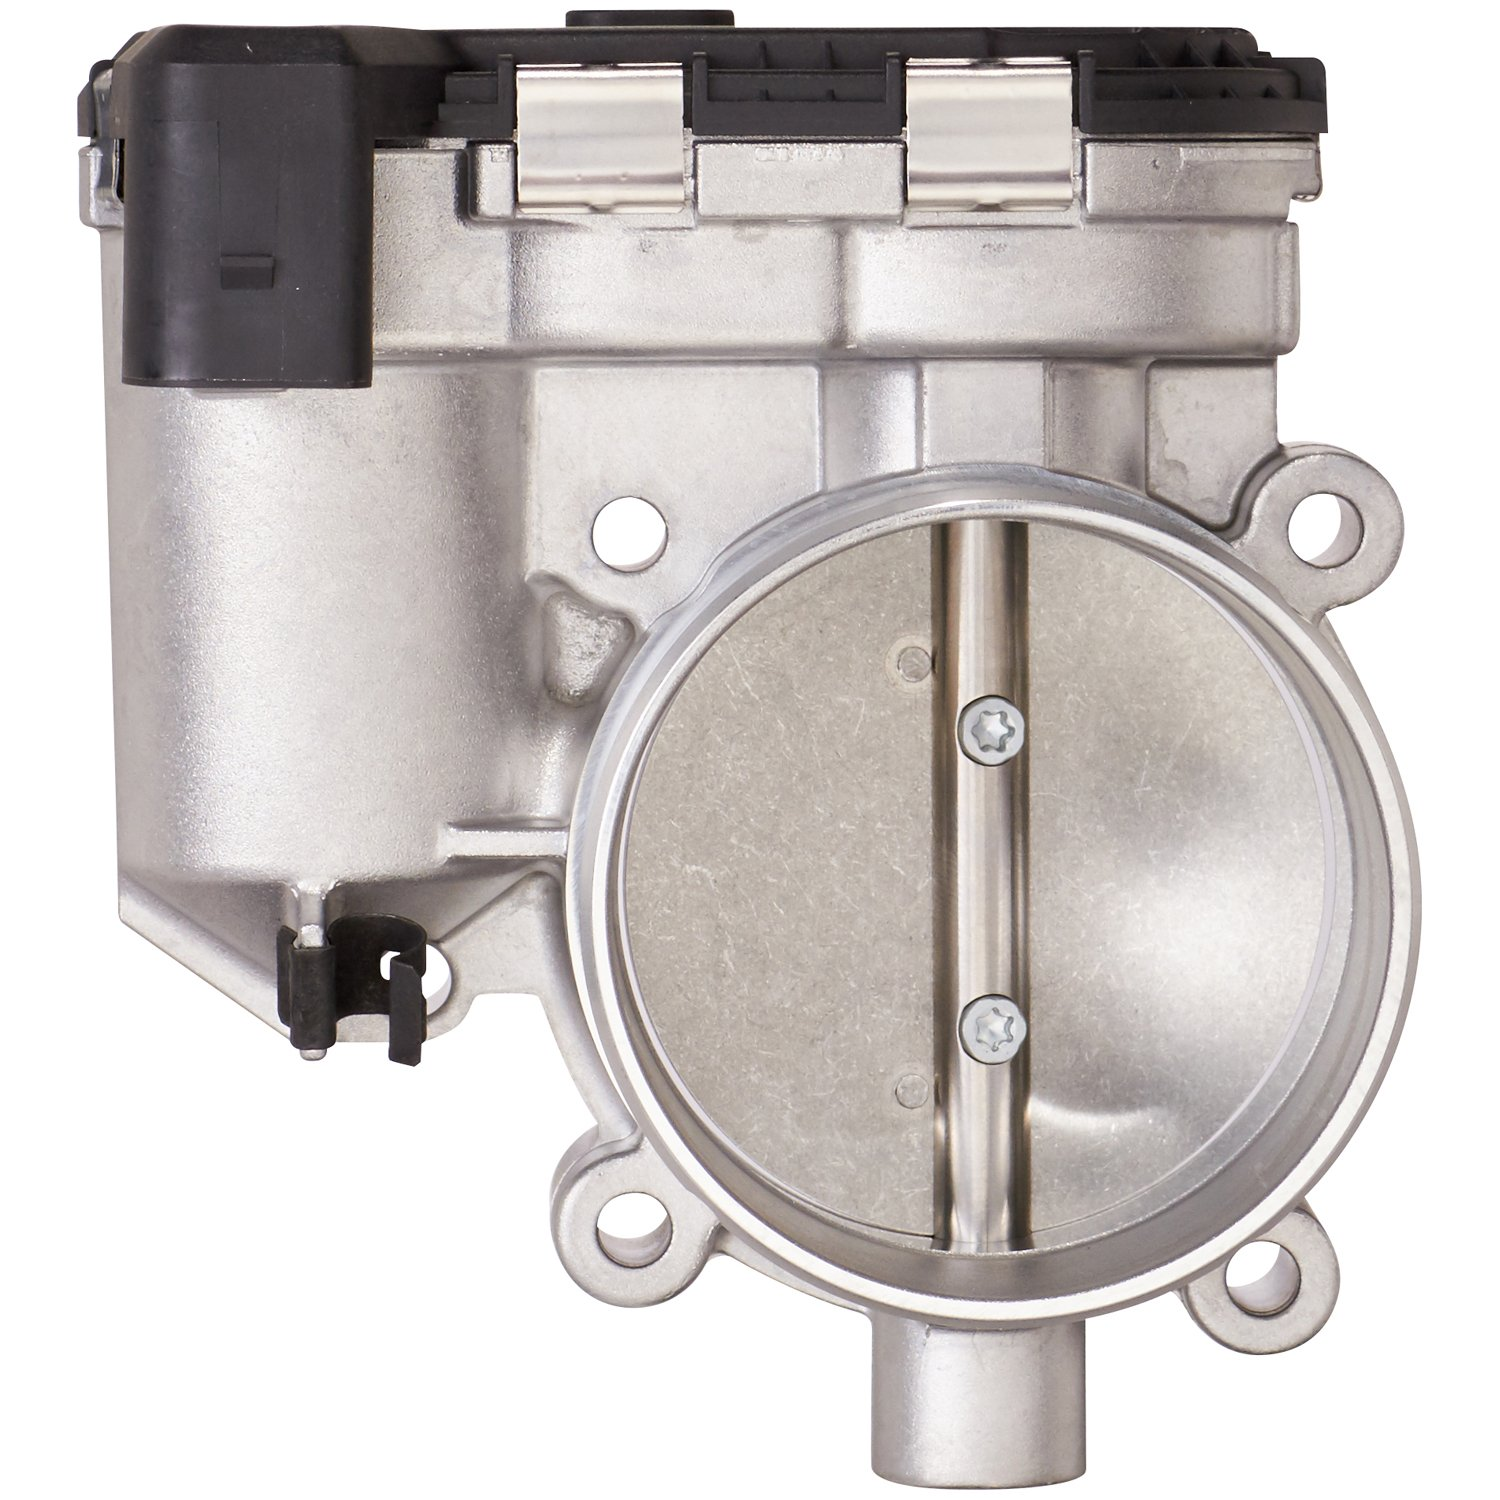 Spectra Premium TB1045 Fuel Injection Throttle Body Assembly